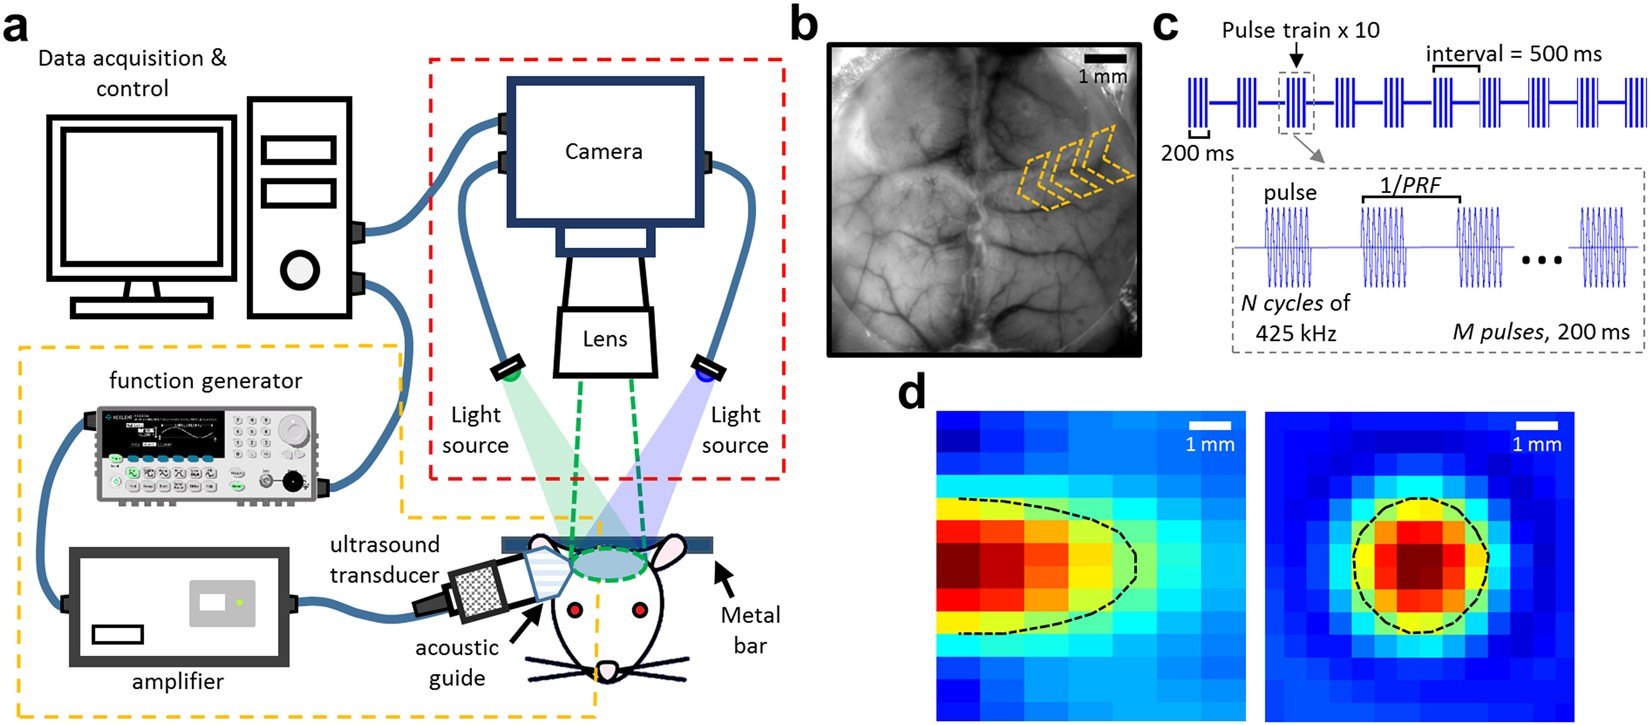 Monitoring Cerebral Hemodynamic Change During Transcranial 25 Khz Ultrasound Transducer Electronics And Electrical Engineering Stimulation Using Optical Intrinsic Signal Imaging Scientific Reports